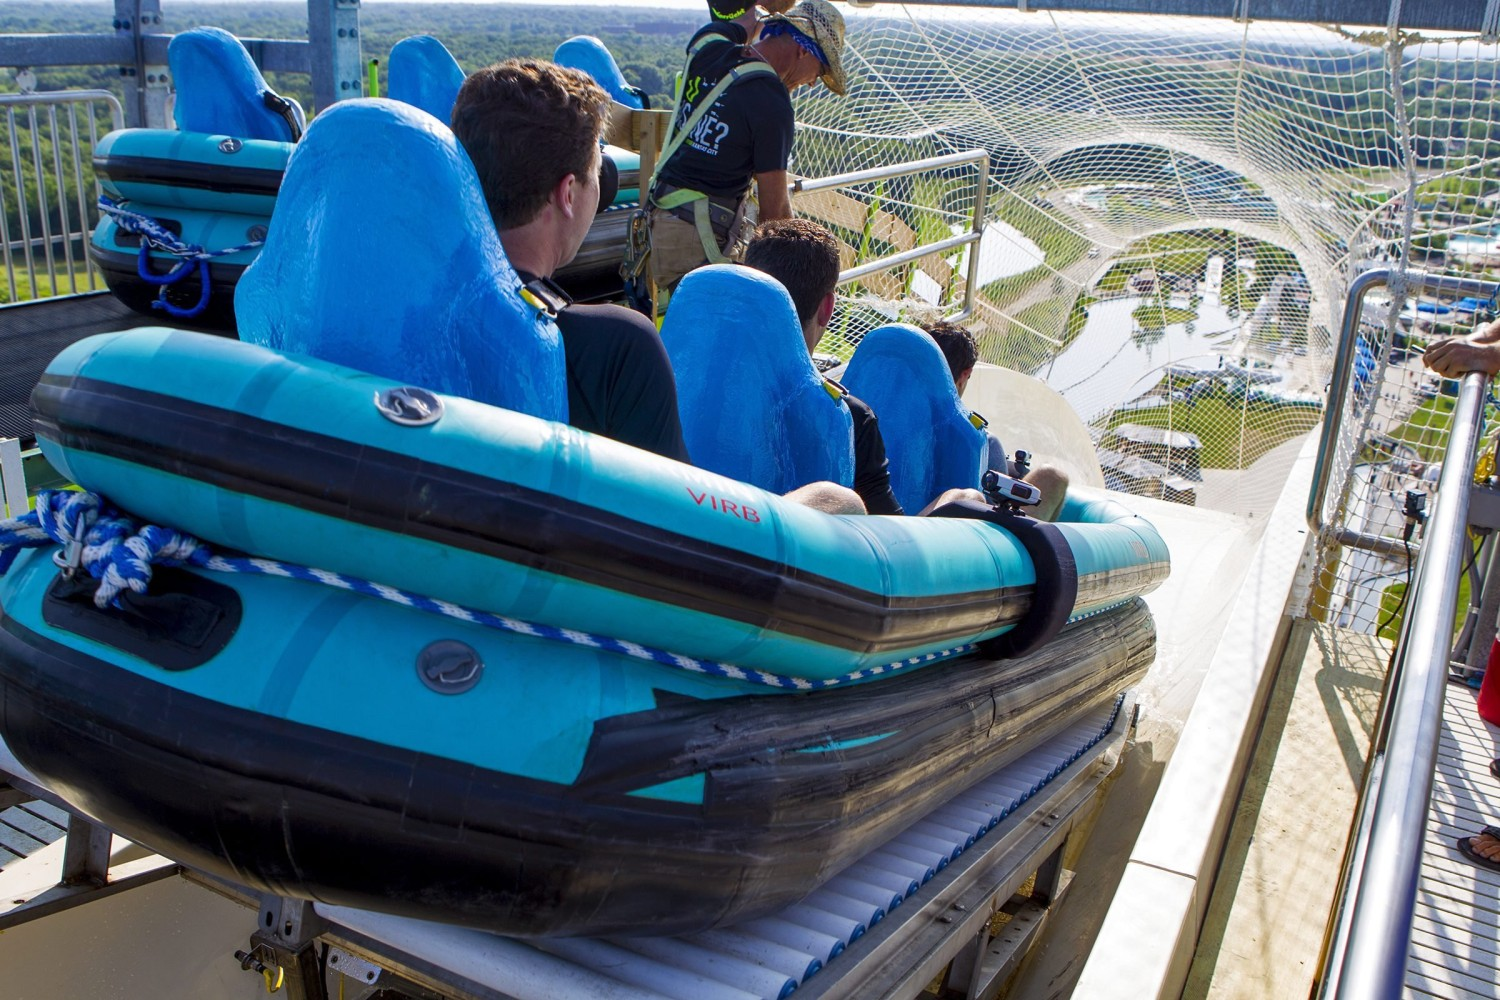 Kansas Water Slide Where 10 Year Old Boy Died To Be Torn